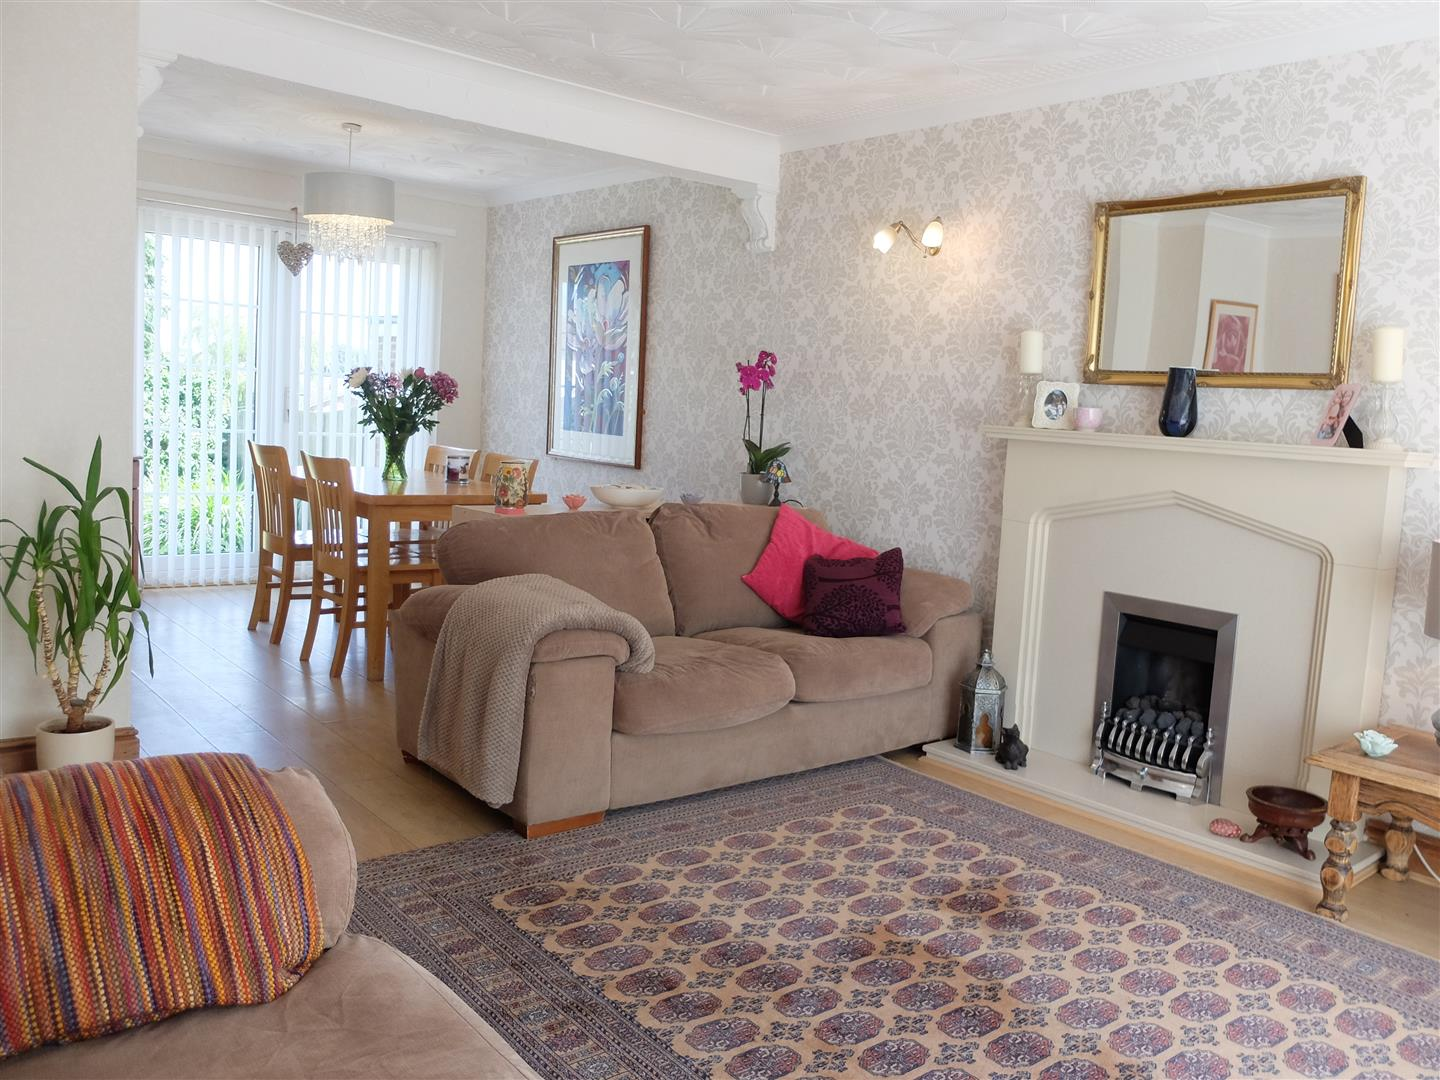 3 Bedrooms House - Detached For Sale 75 Cumwhinton Road Carlisle